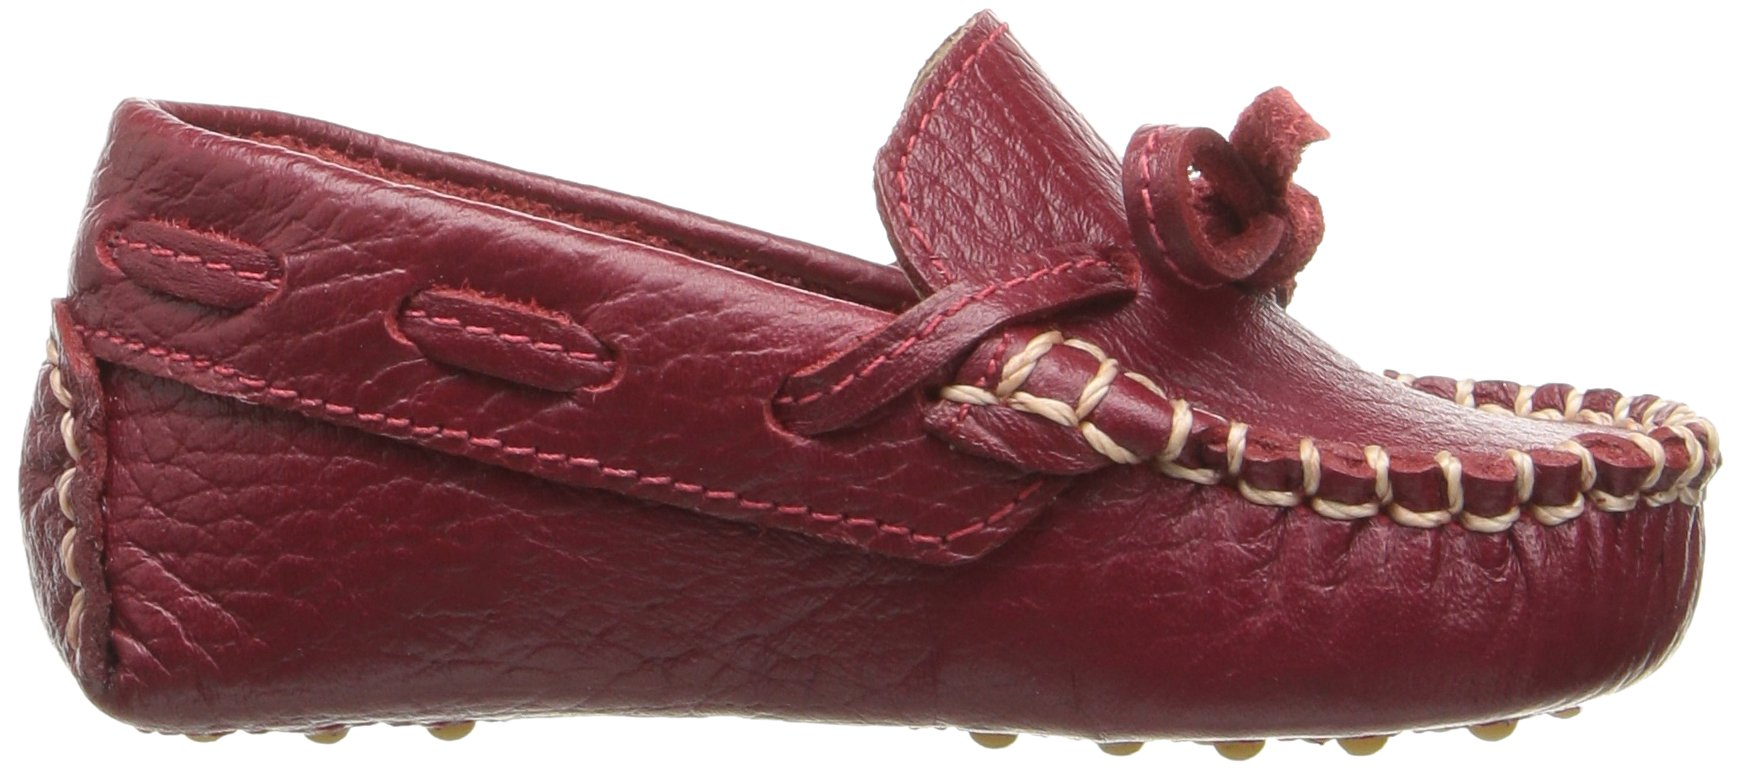 Elephantito Boys' Driver Loafer-K, Racing Red 10 M US Toddler by Elephantito (Image #7)